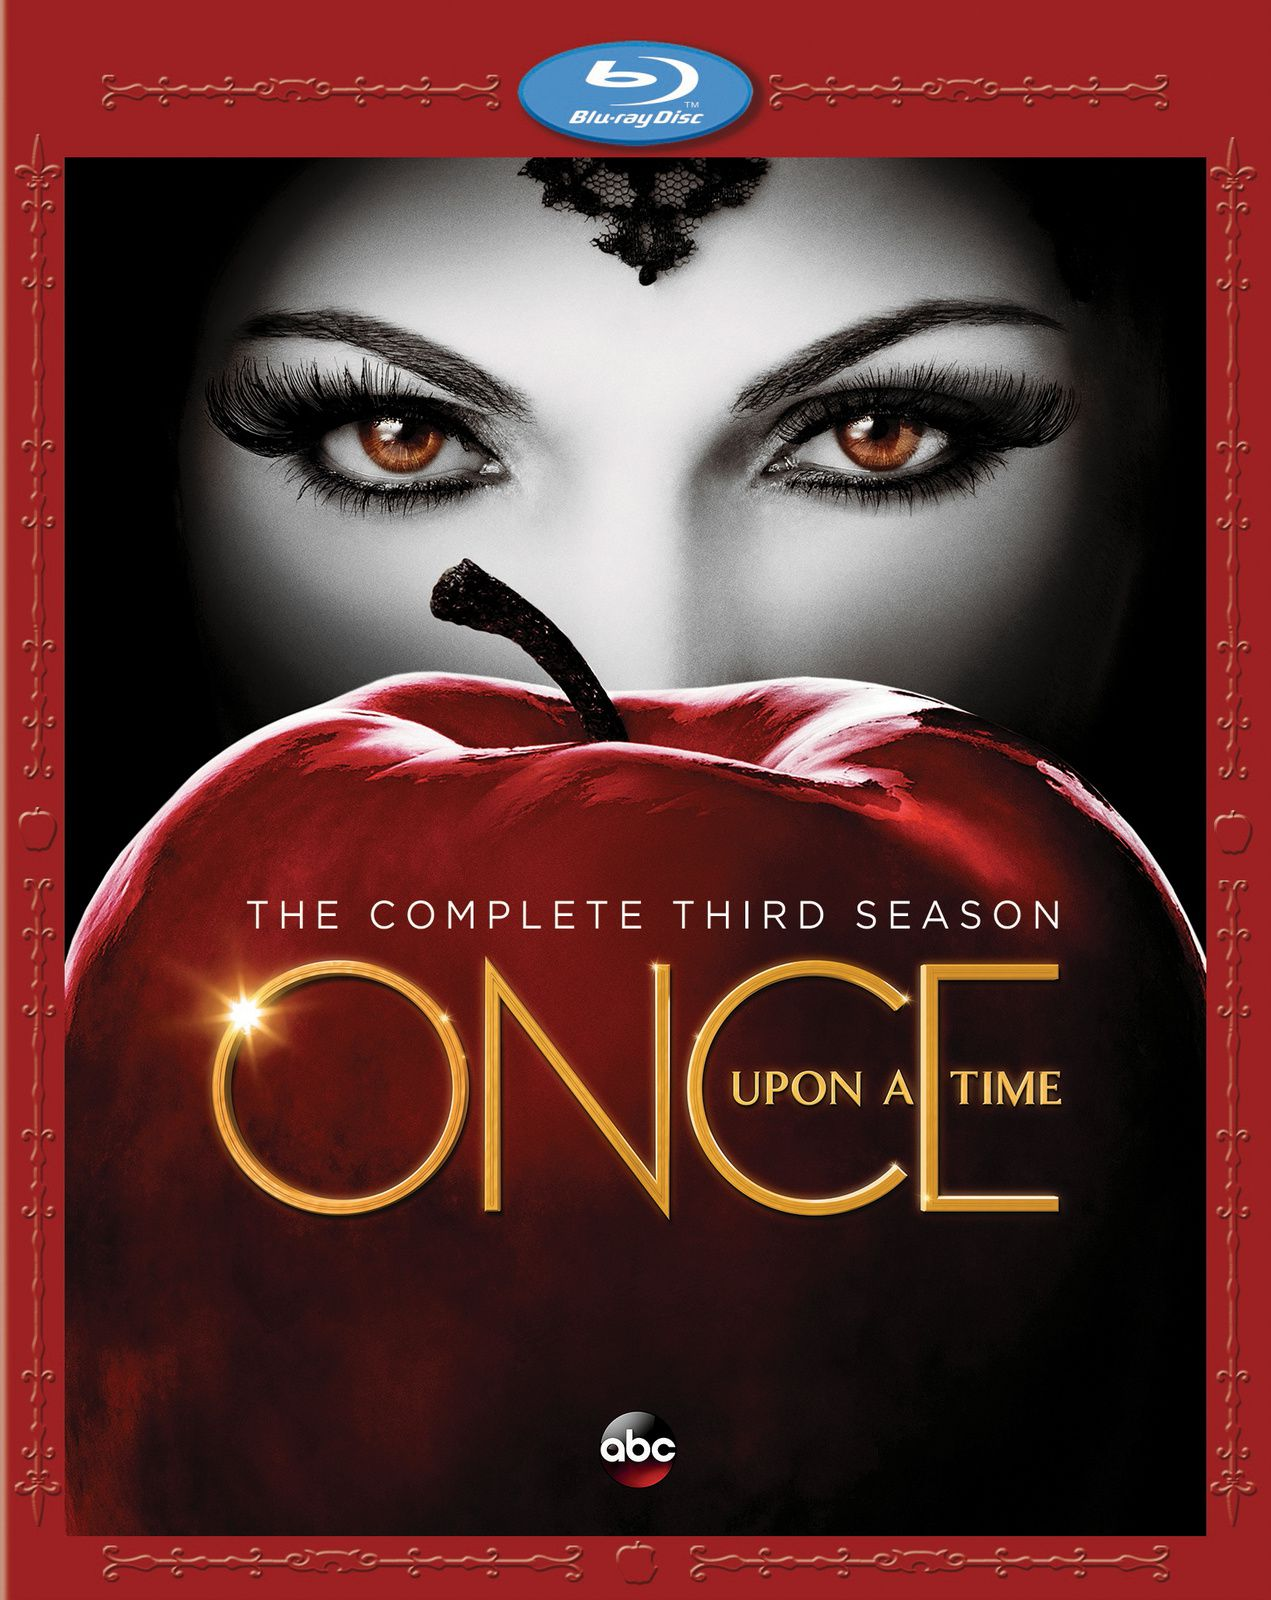 Once upon a time saison 3 en dvd/blu-ray